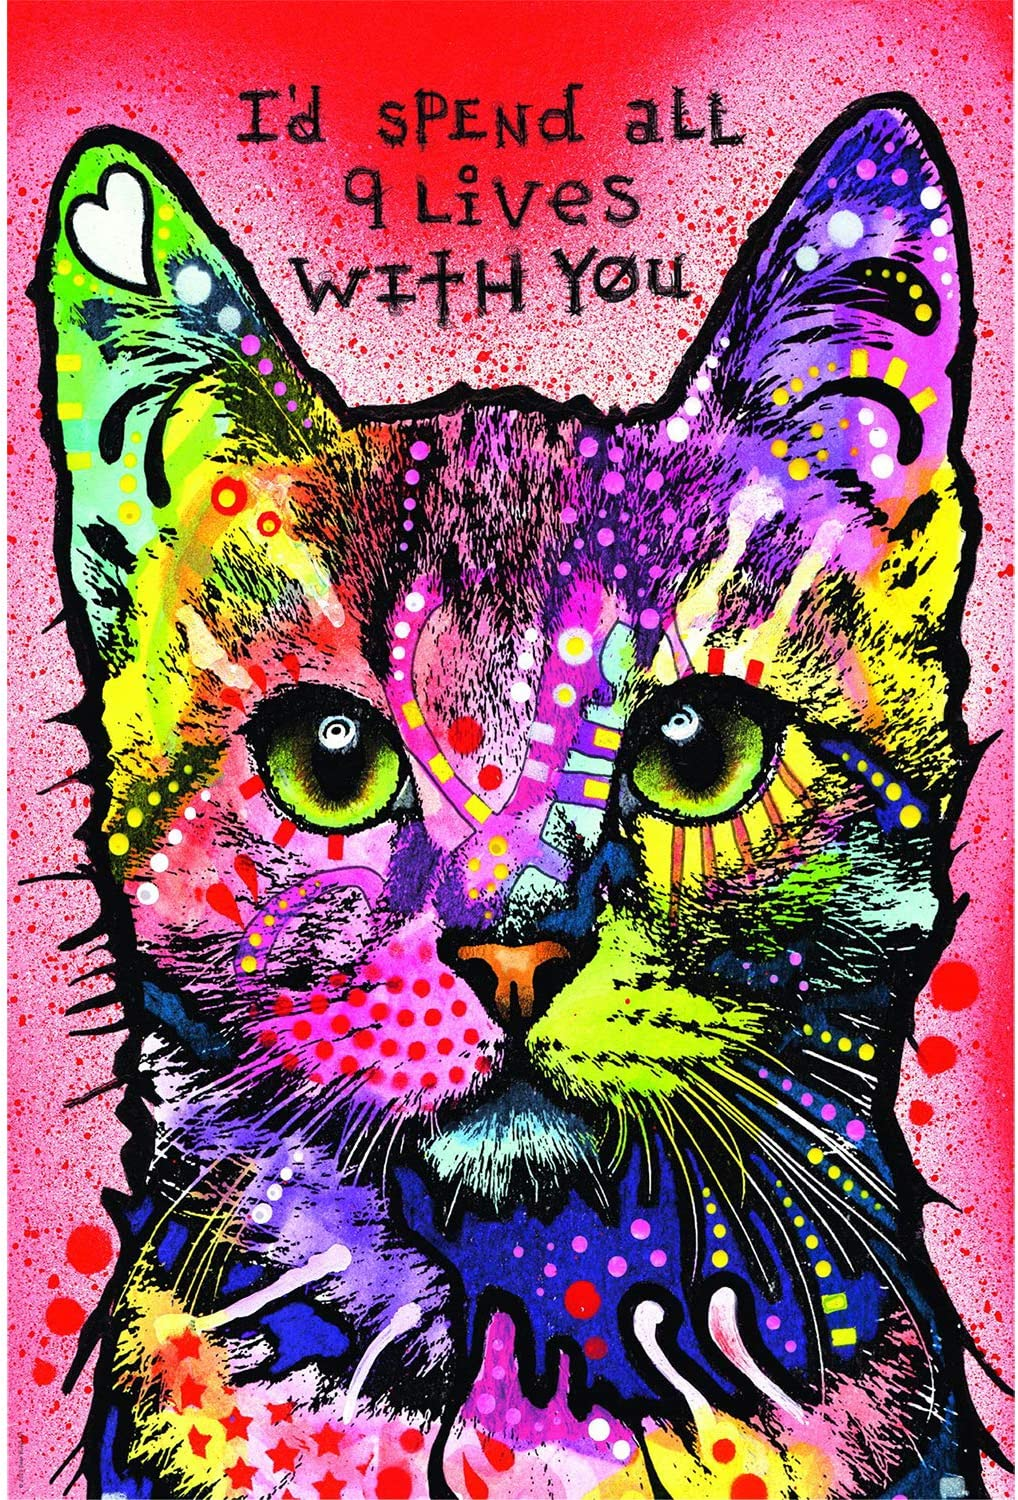 Hartop Jigsaw Puzzles 1000 Pieces for Adults, Wooden Jigsaw Puzzles Colorful Cat, Entertainment DIY Toys for Creative Gift Decor